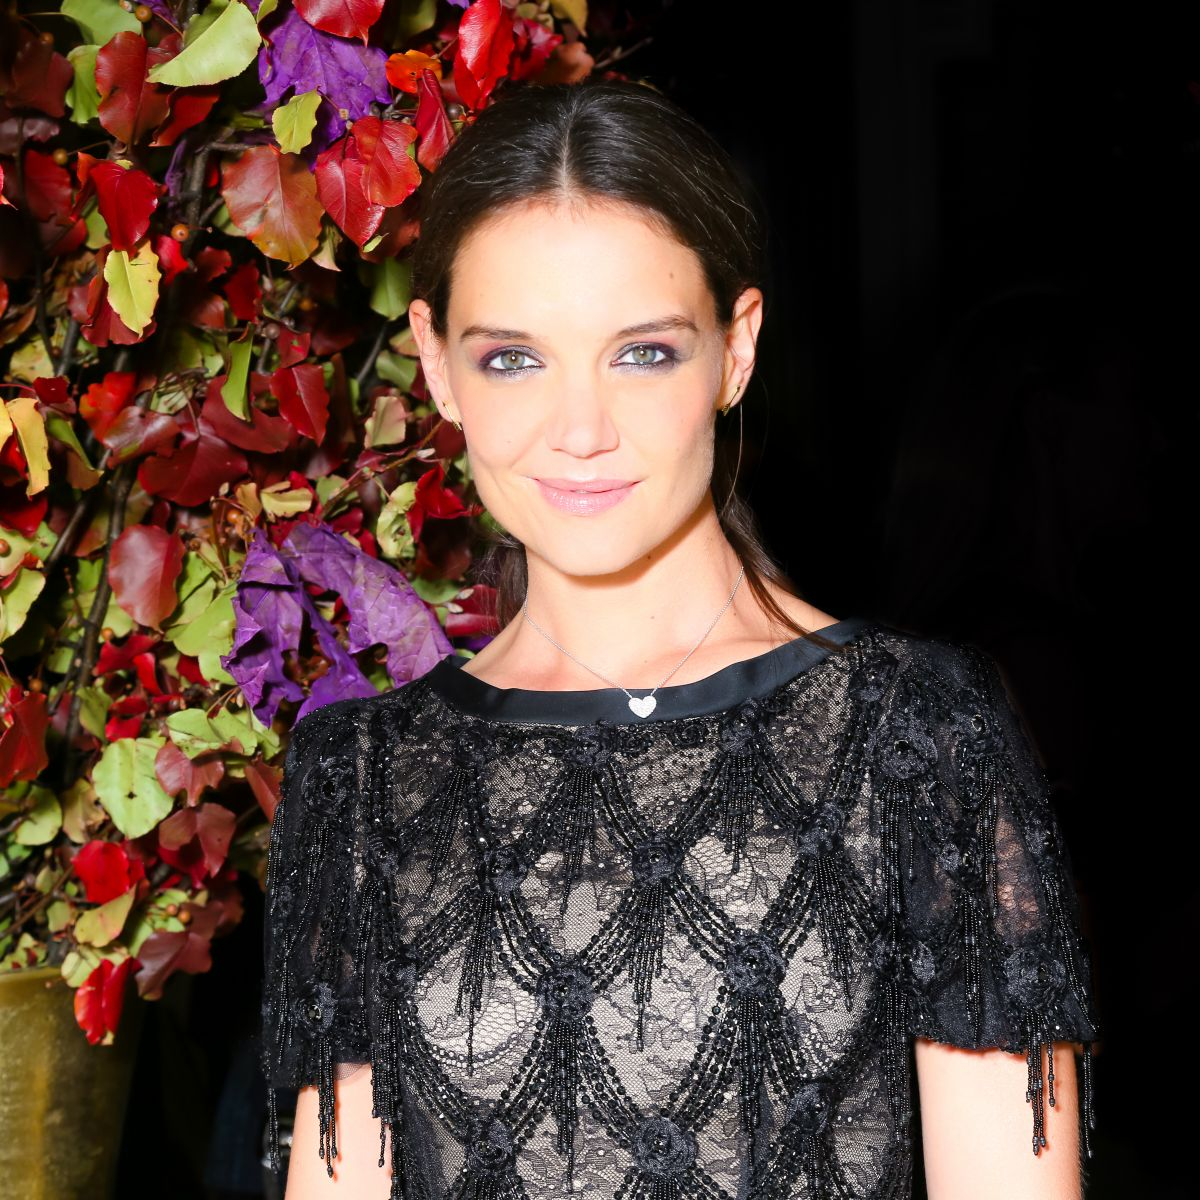 KATIE HOLMES at Midnight Supper at St. Regis Hotel in New York